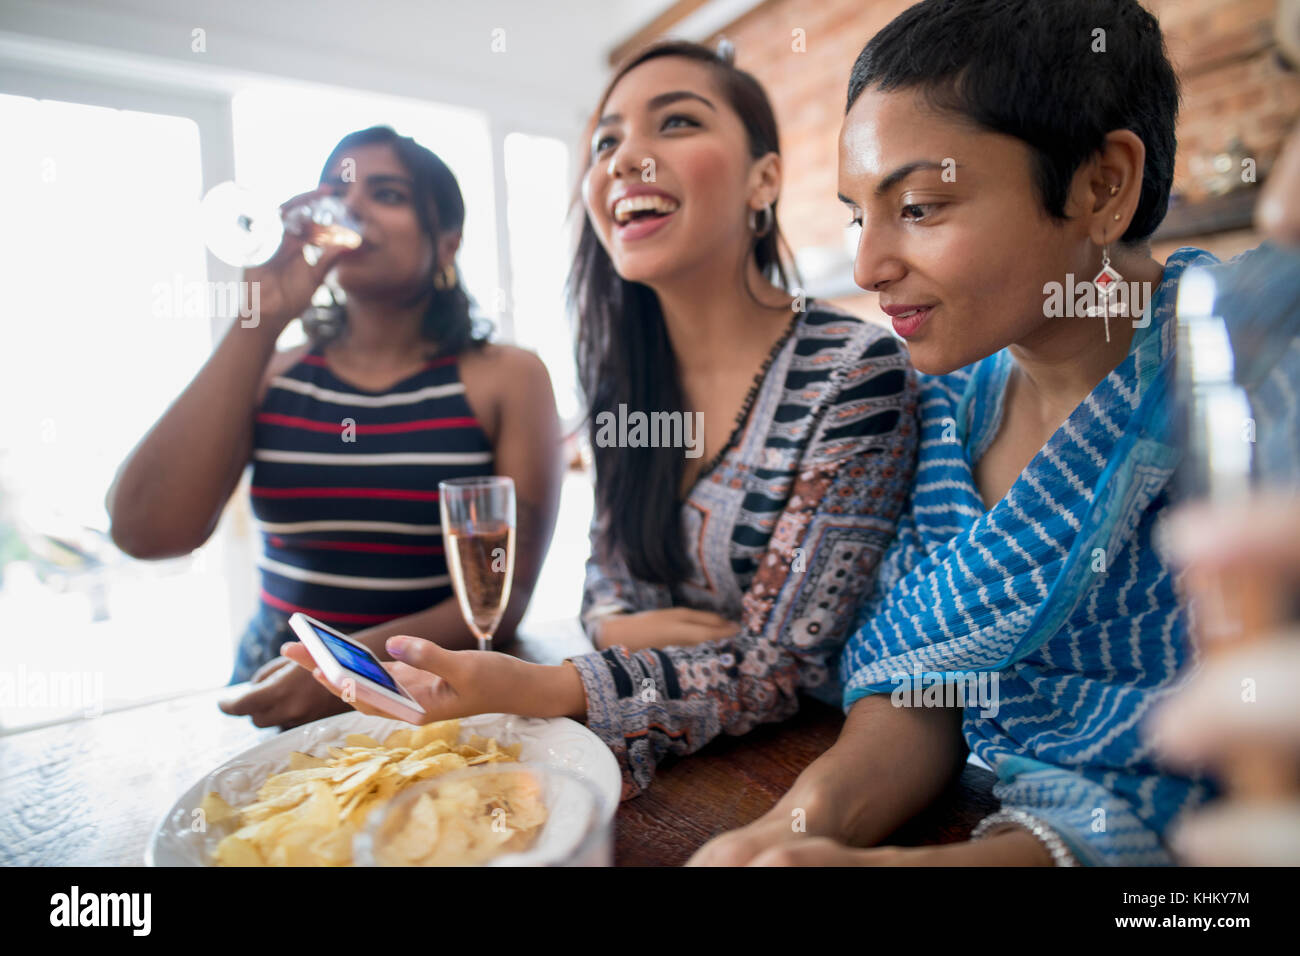 Young women at a party - Stock Image